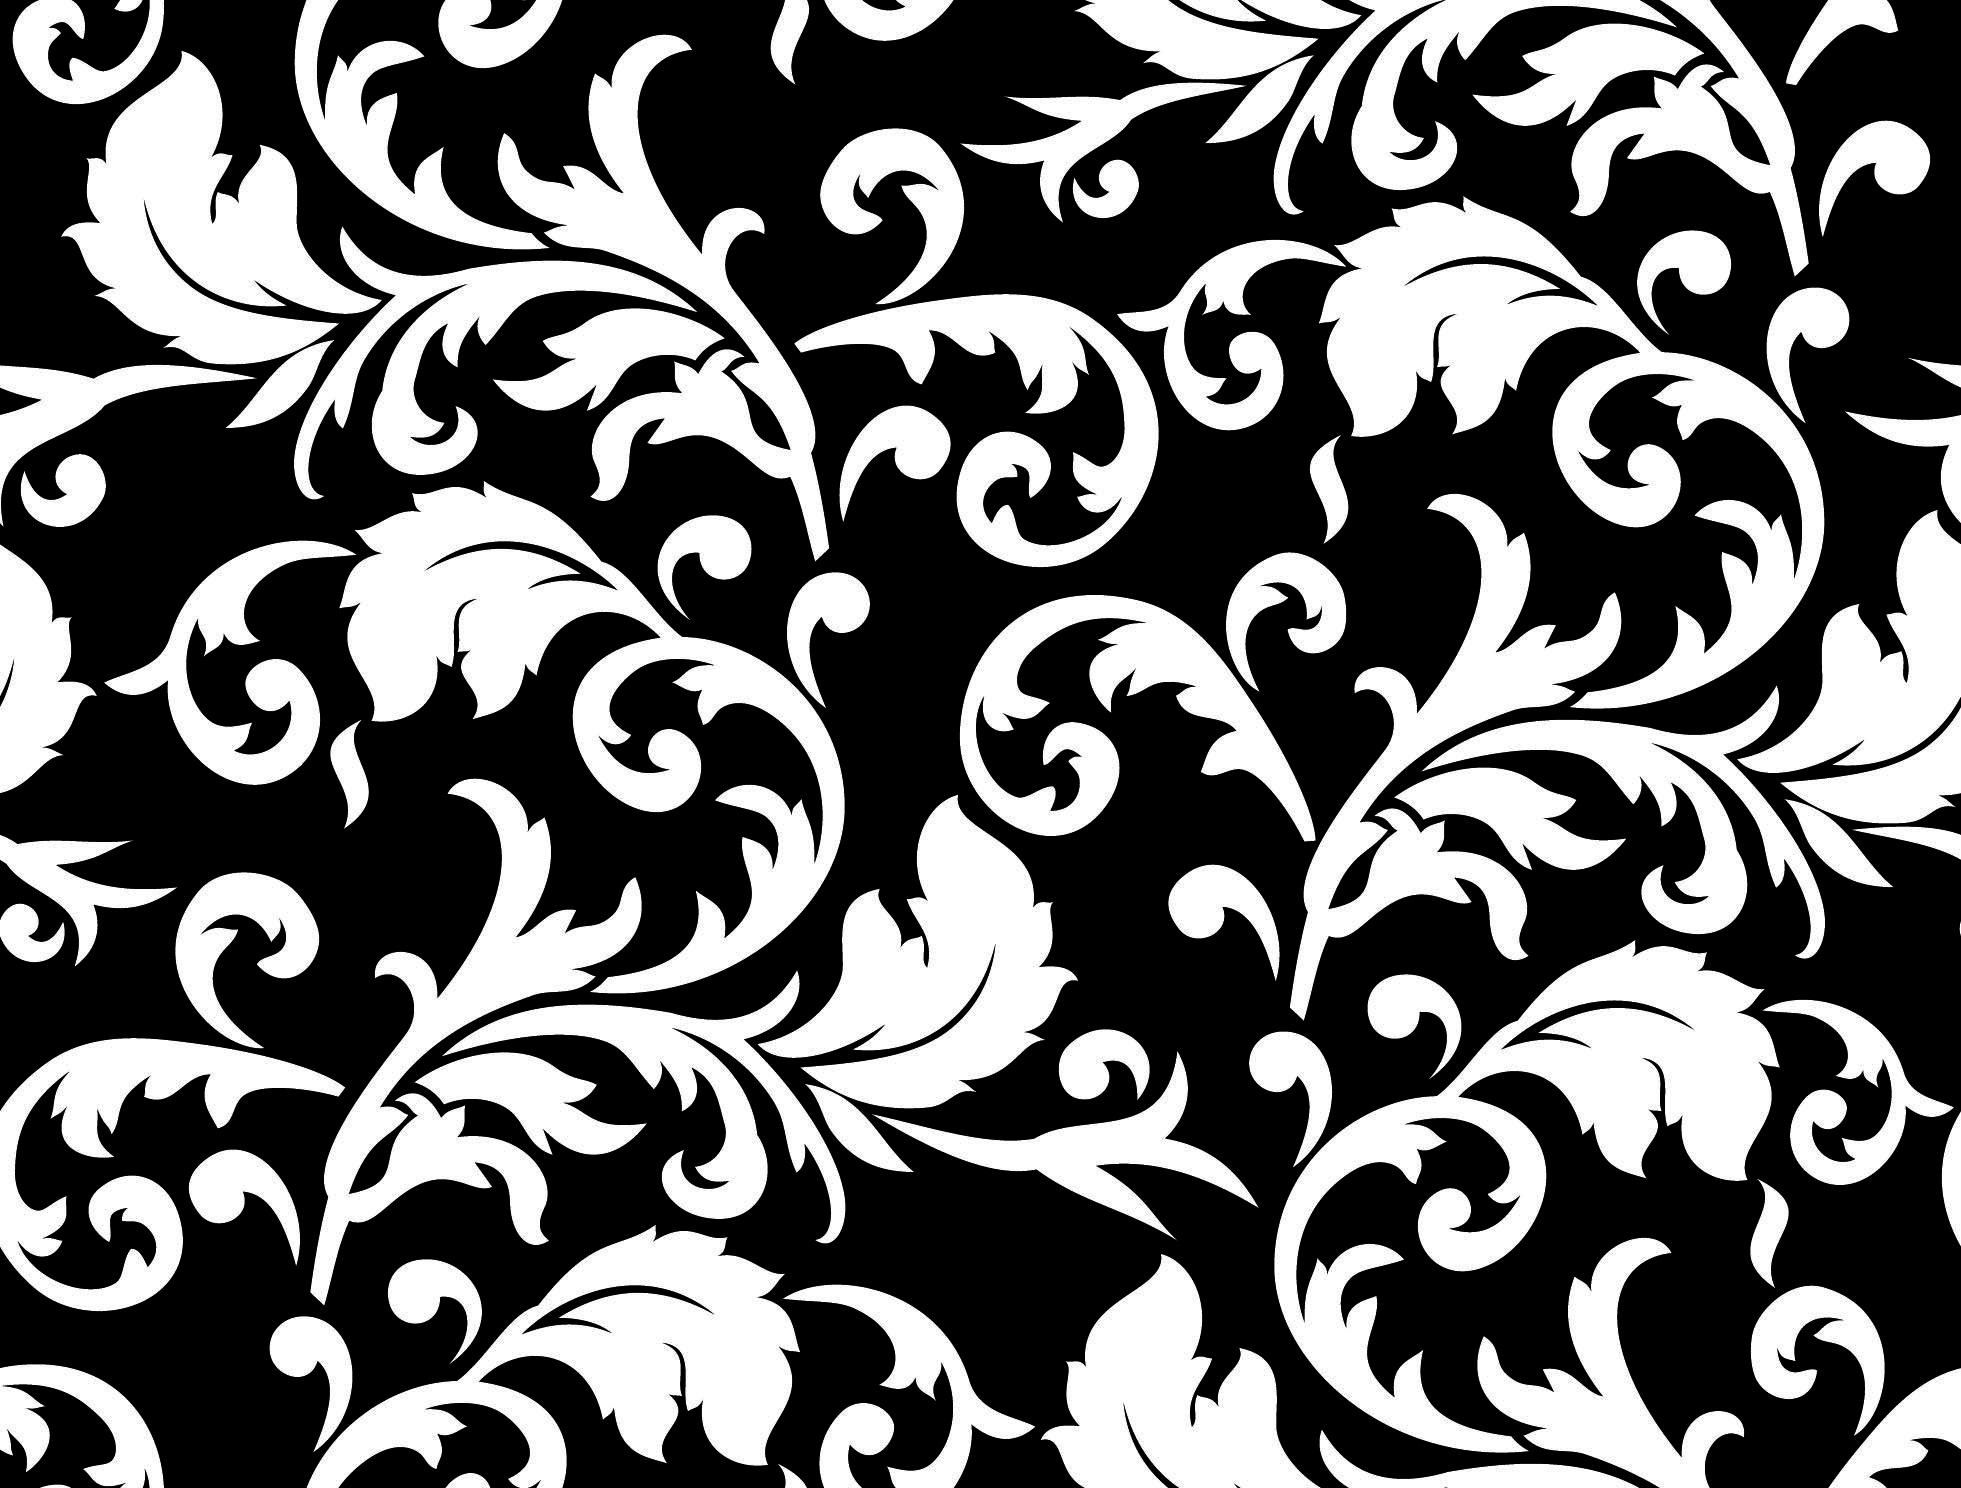 Black And White Floral Patterns